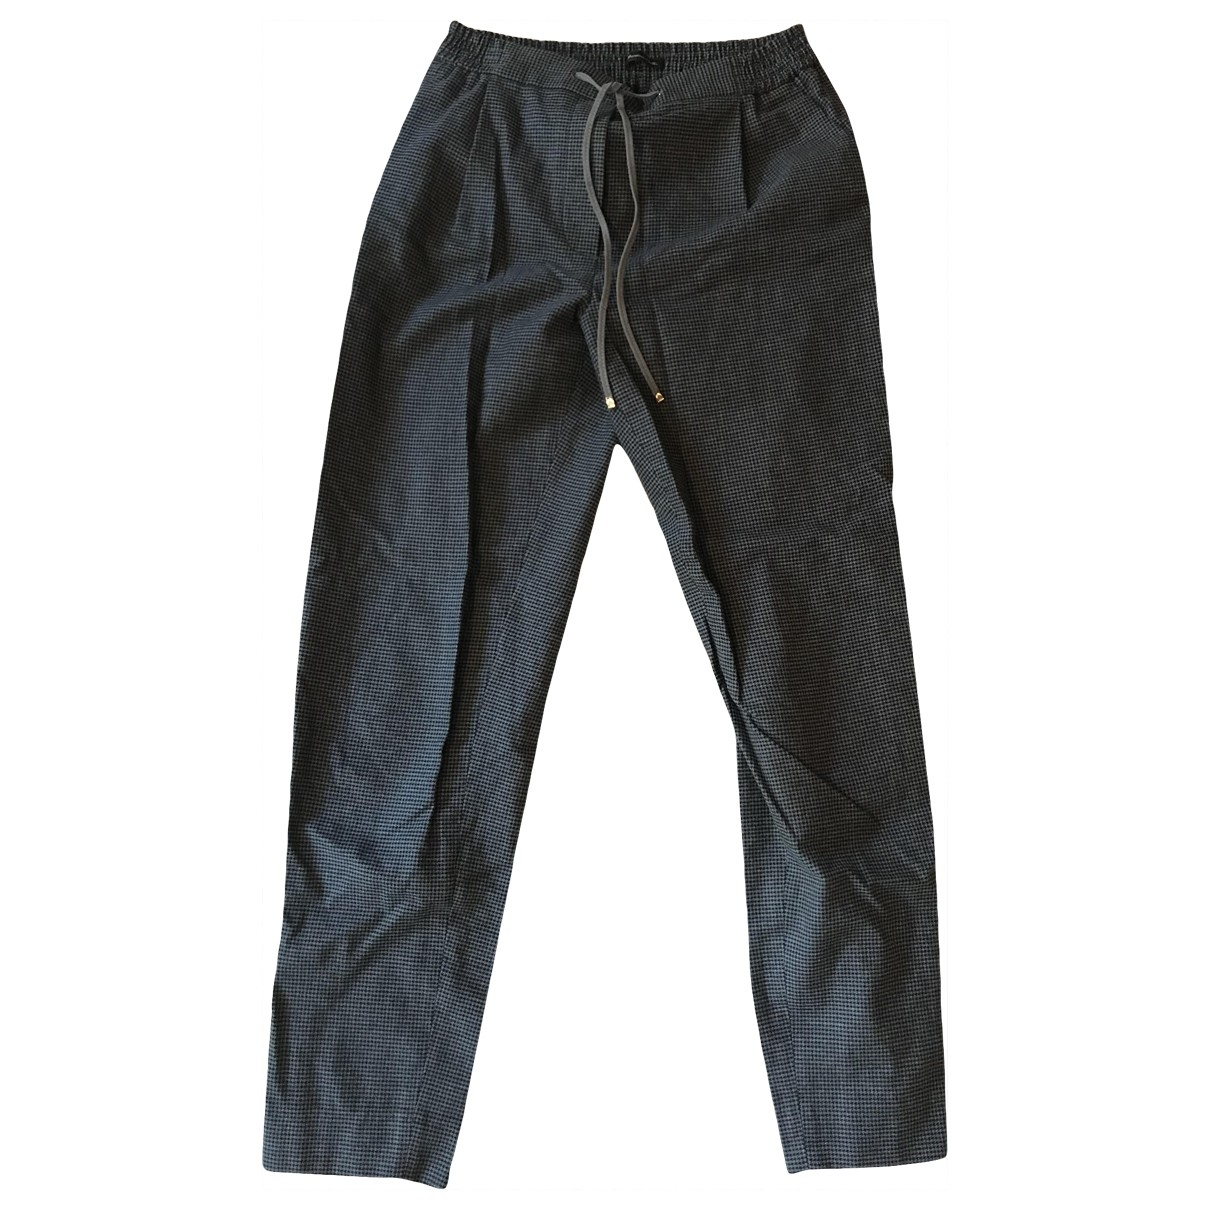 Massimo Dutti \N Grey Cotton Trousers for Women 36 FR